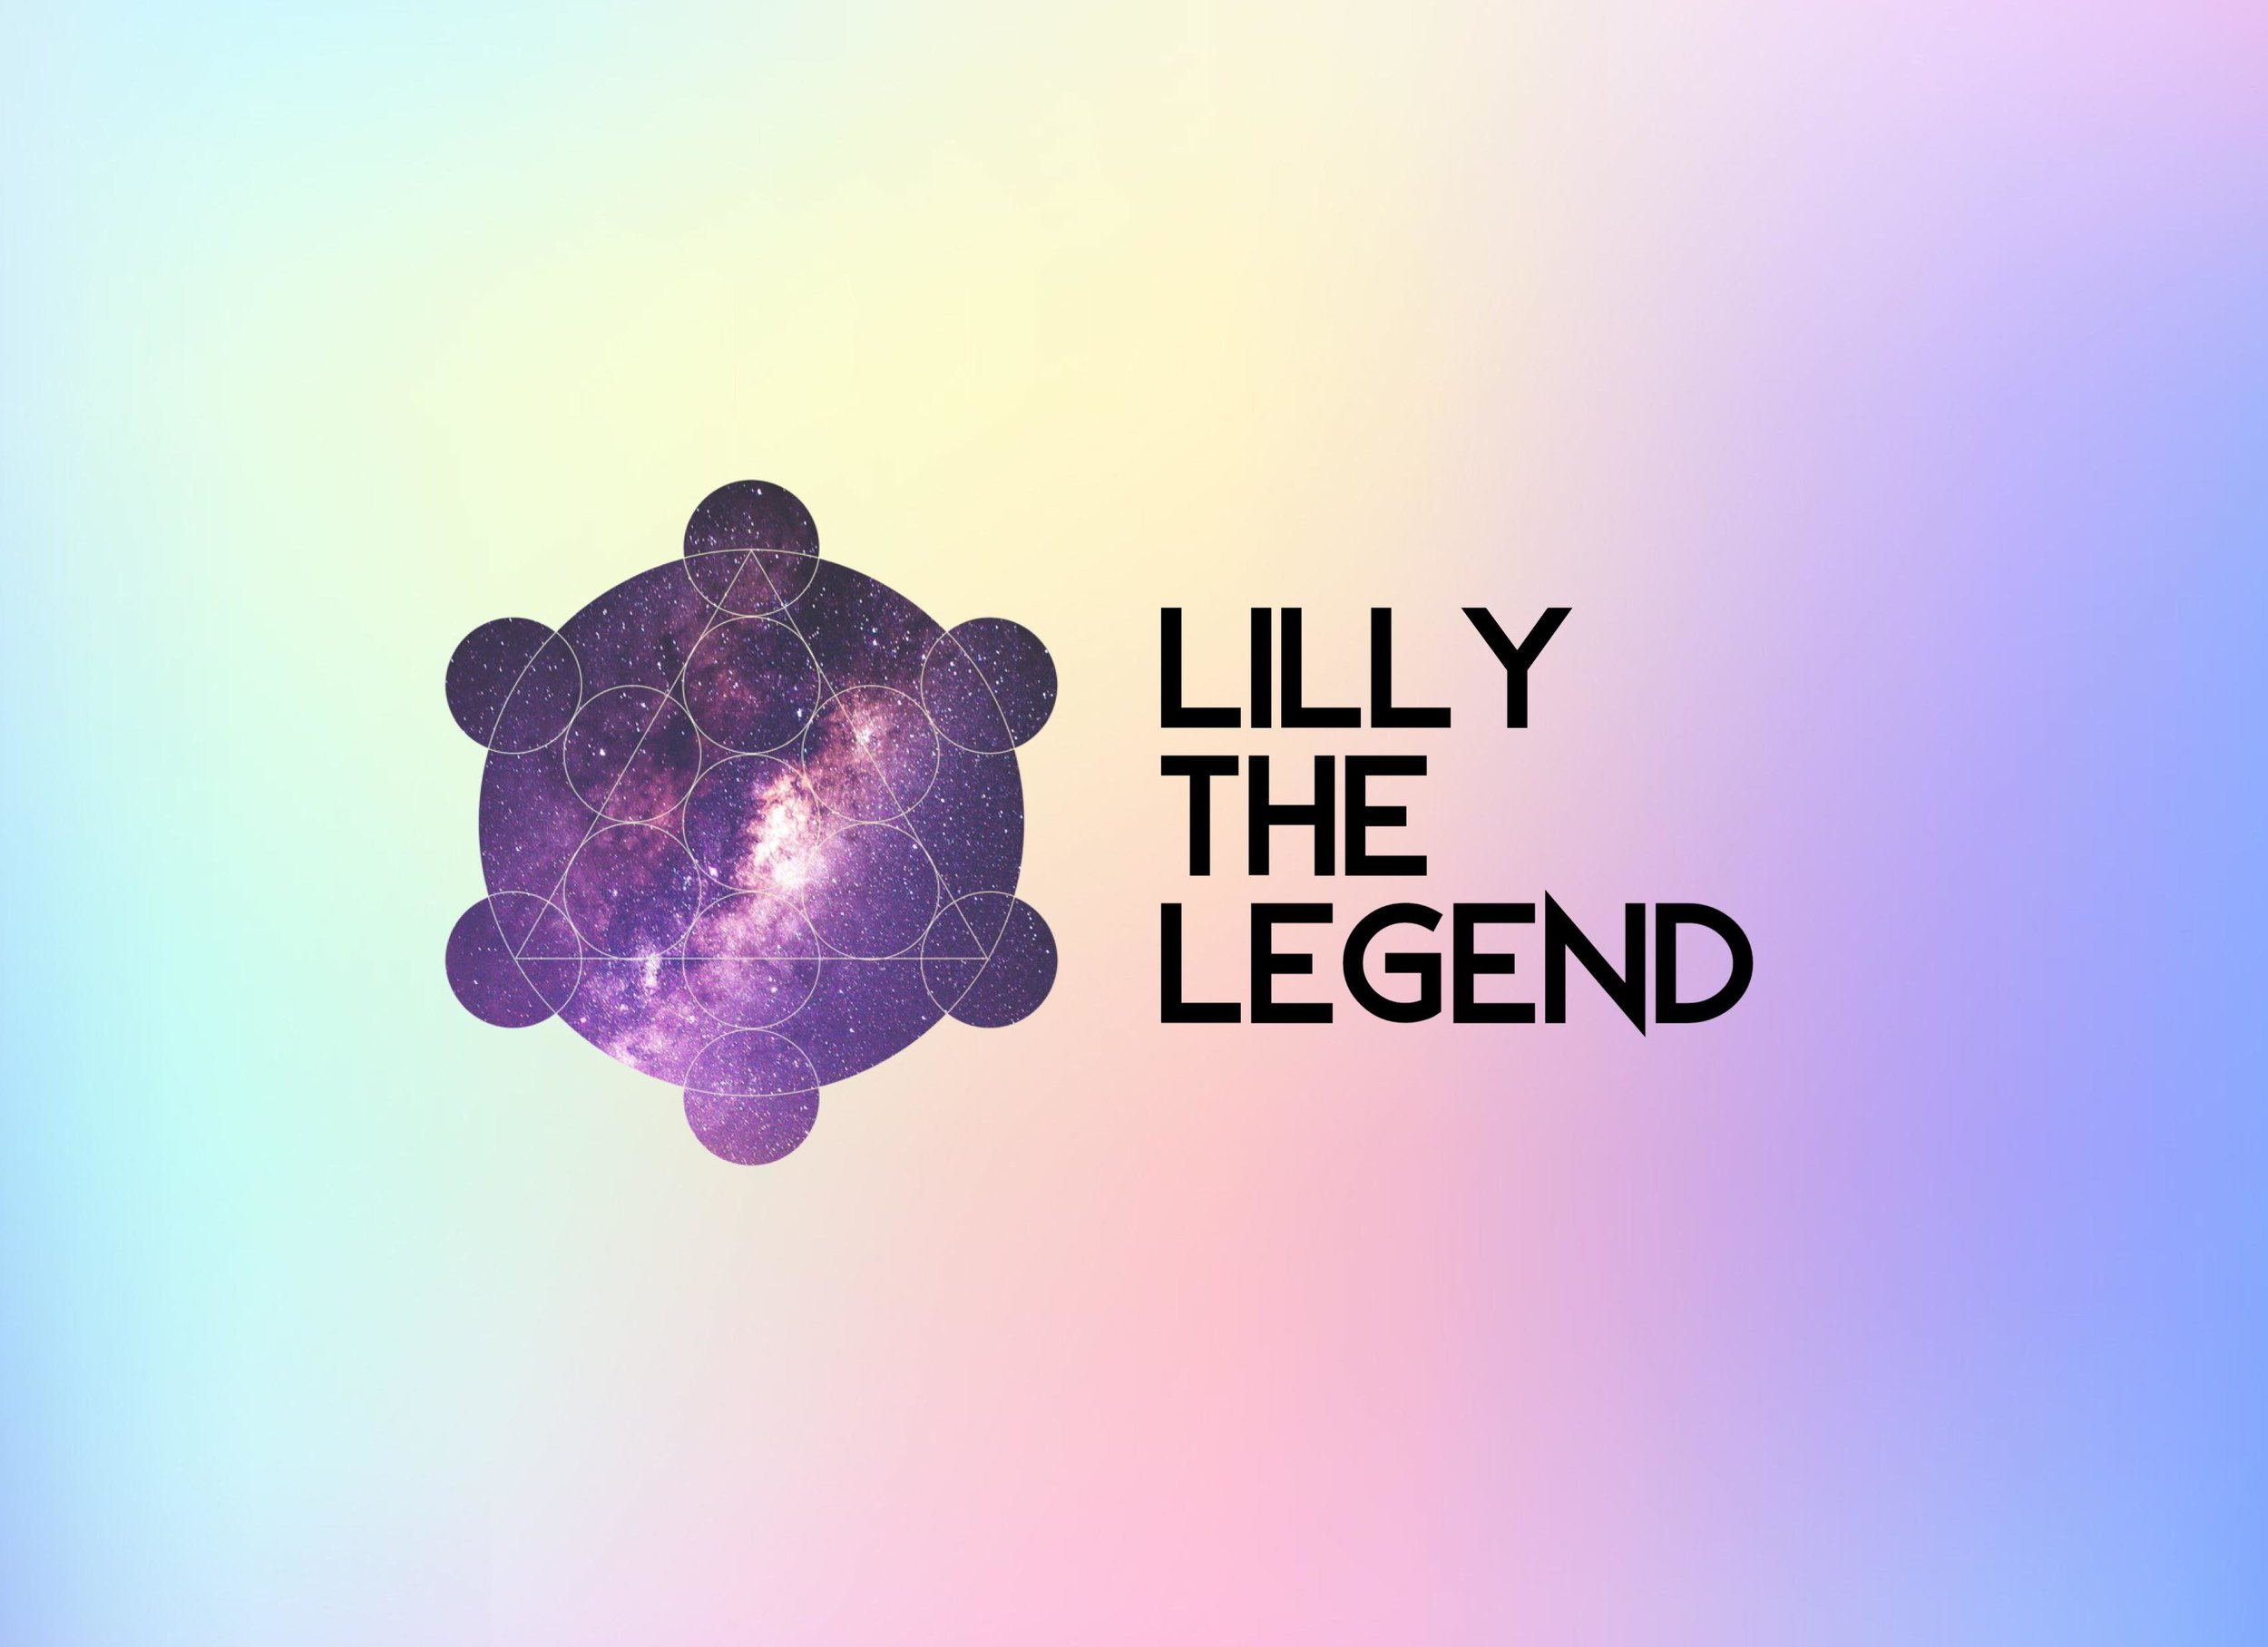 lilly the legend minneapolis minnesota astrologer